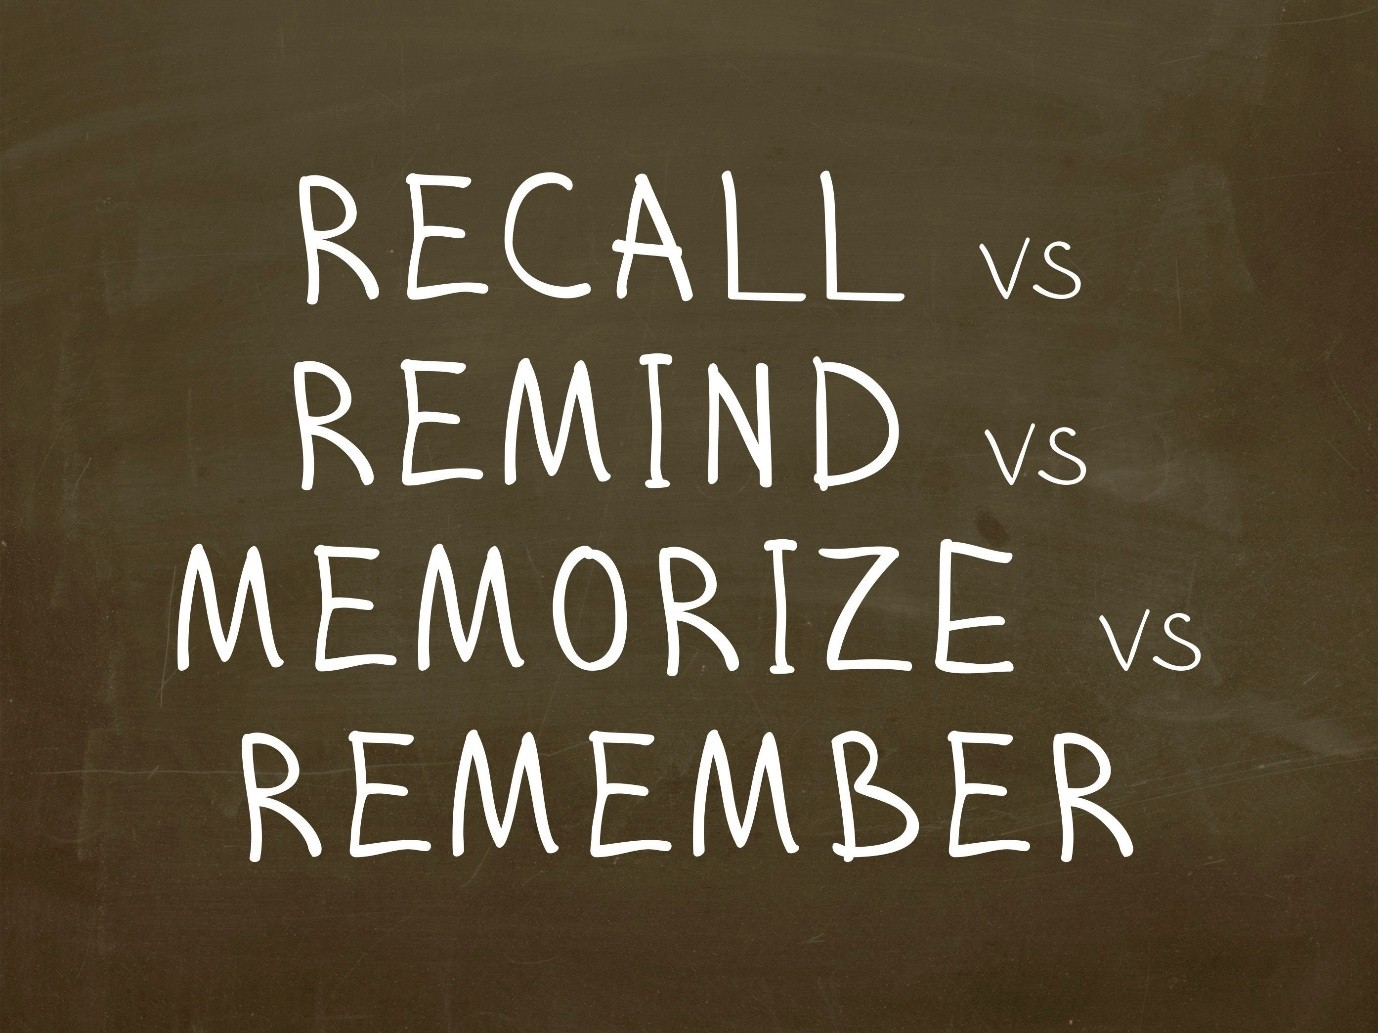 Remember, Remind and Memorize